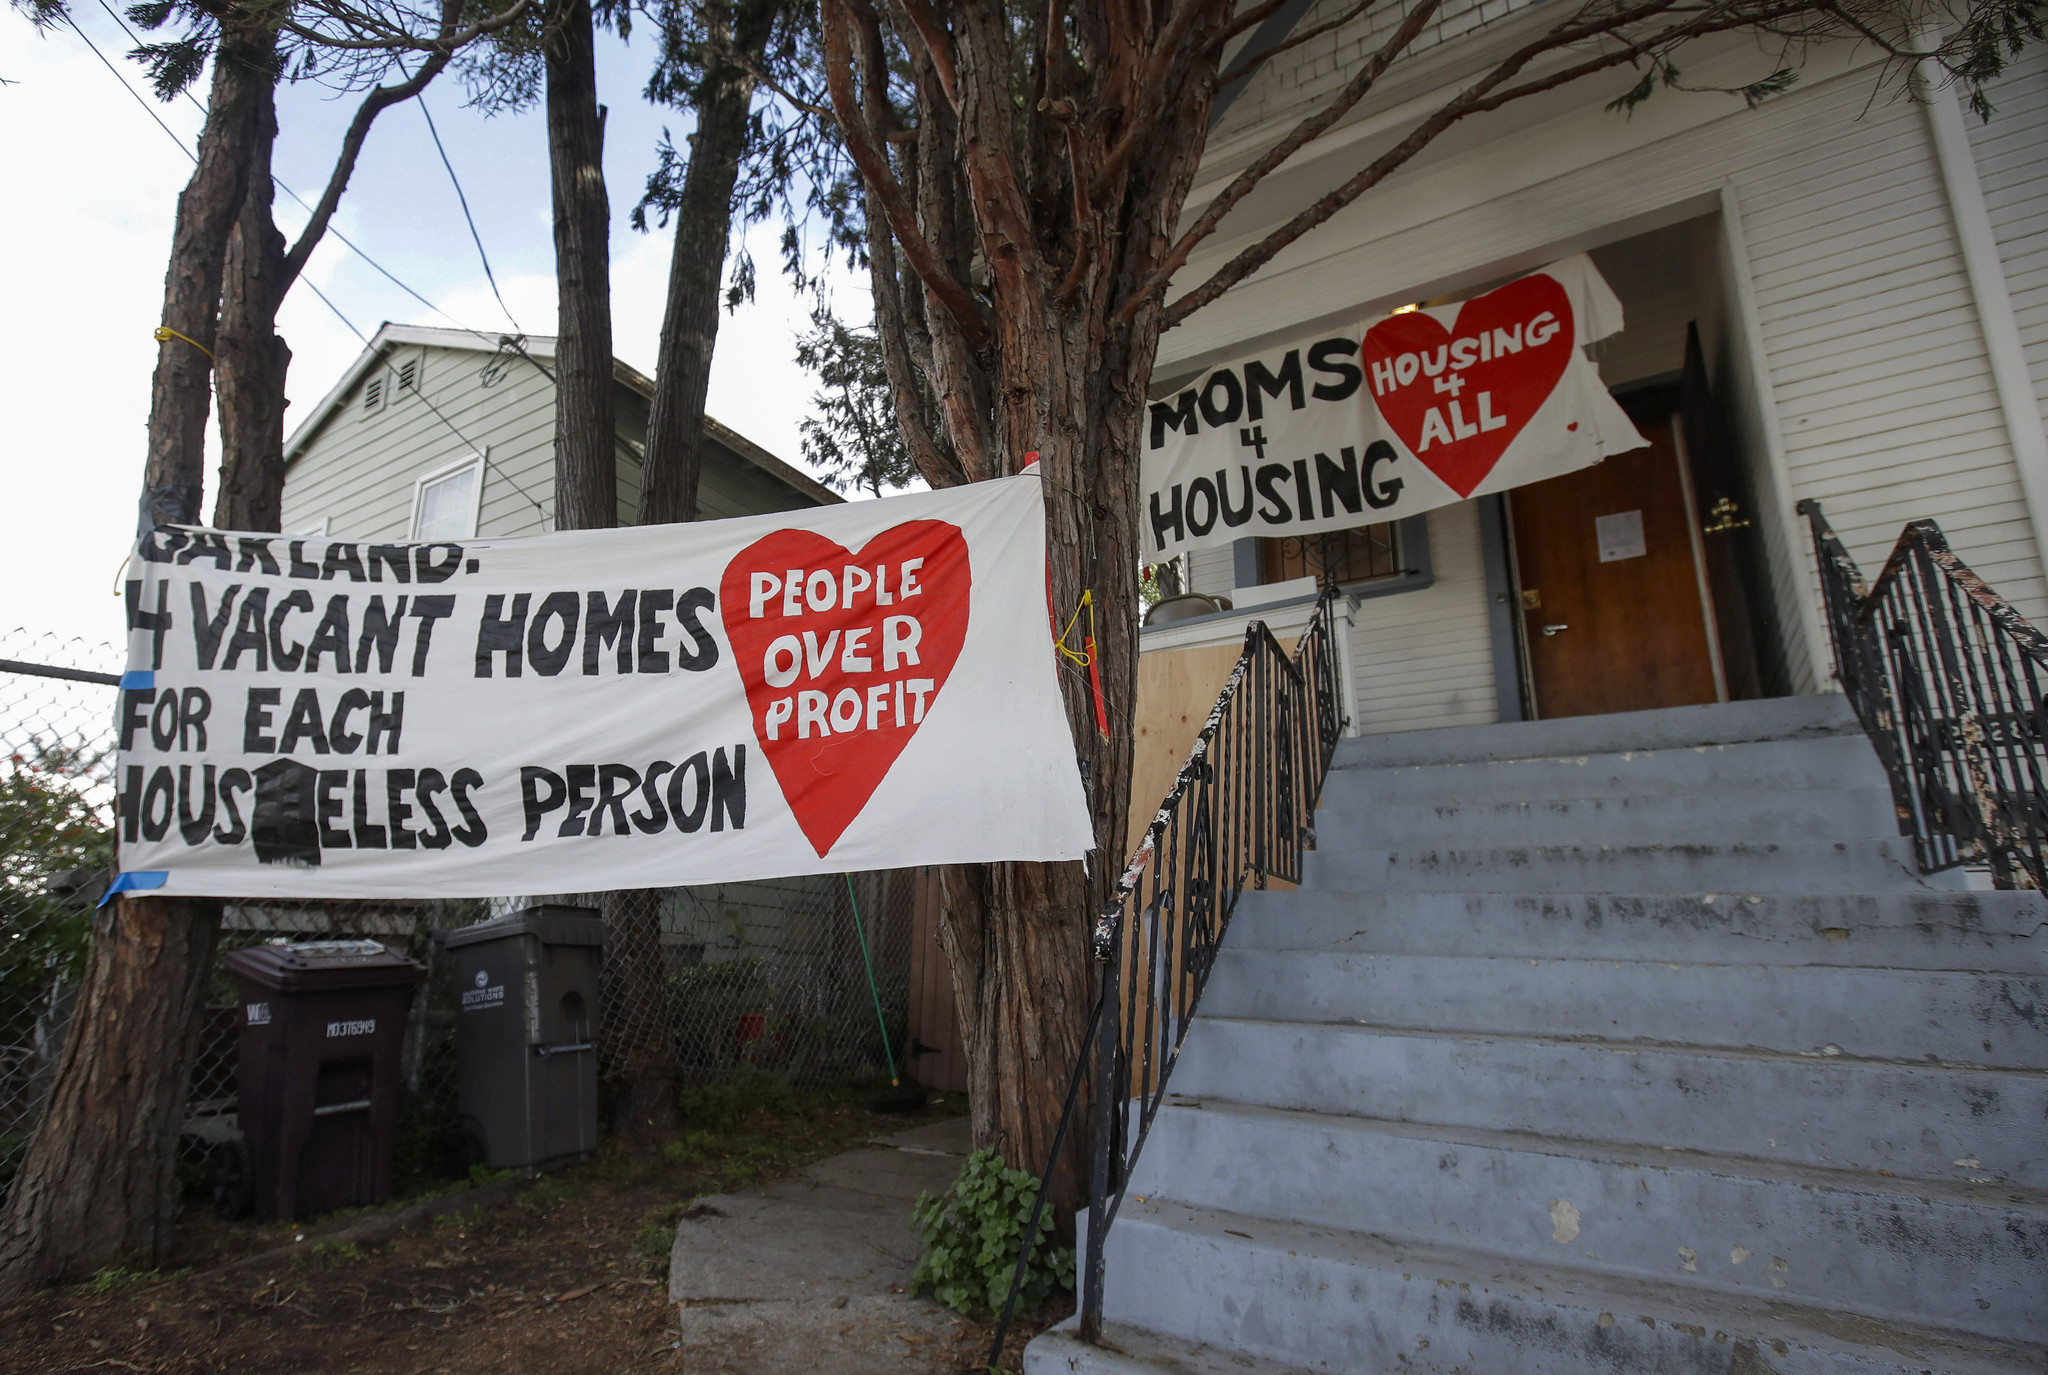 Homeless Oakland moms reach deal to buy house where they were squatting